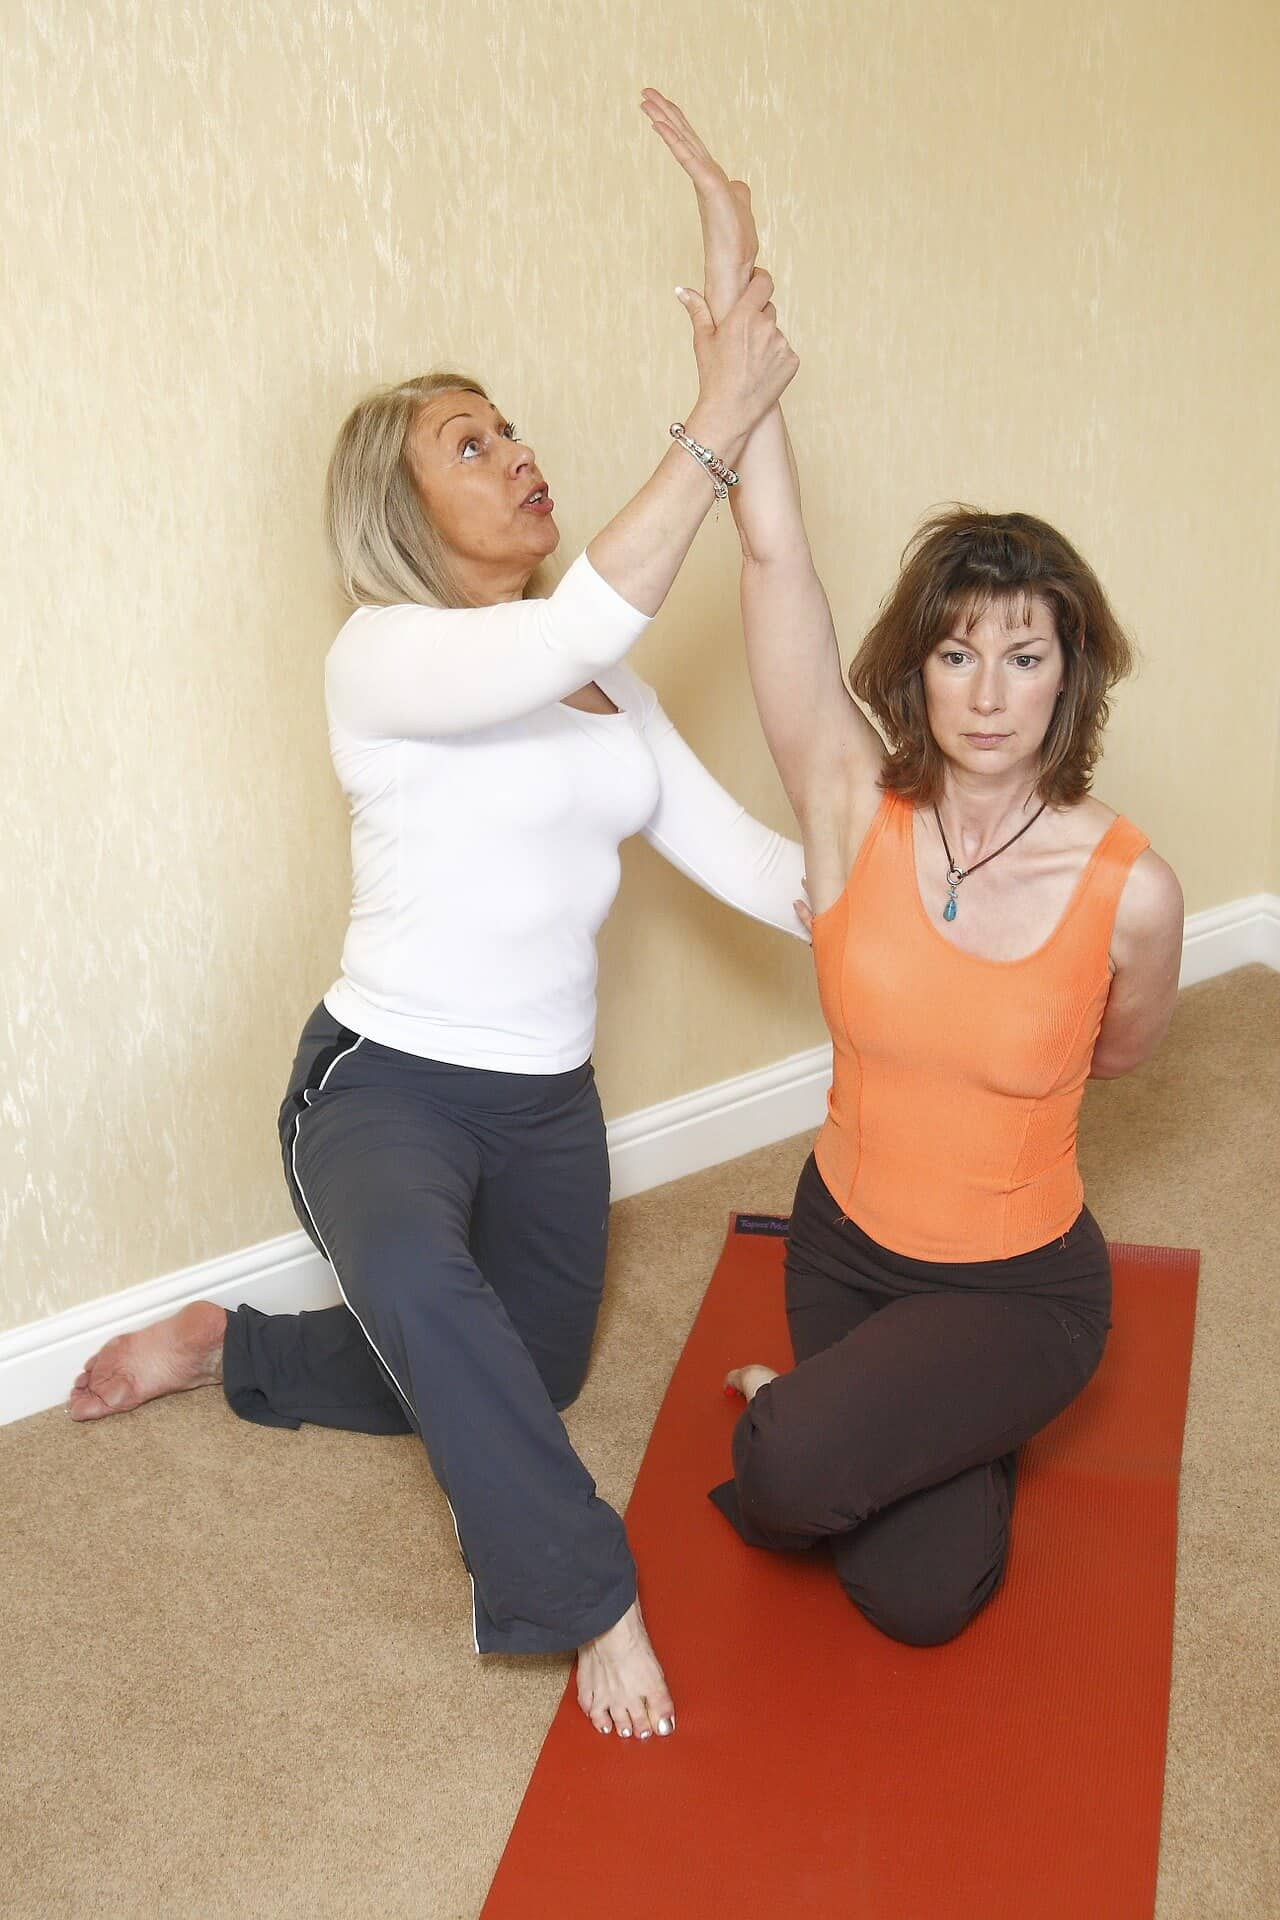 Shoulder Stretches To Relieve Pain And Discomfort